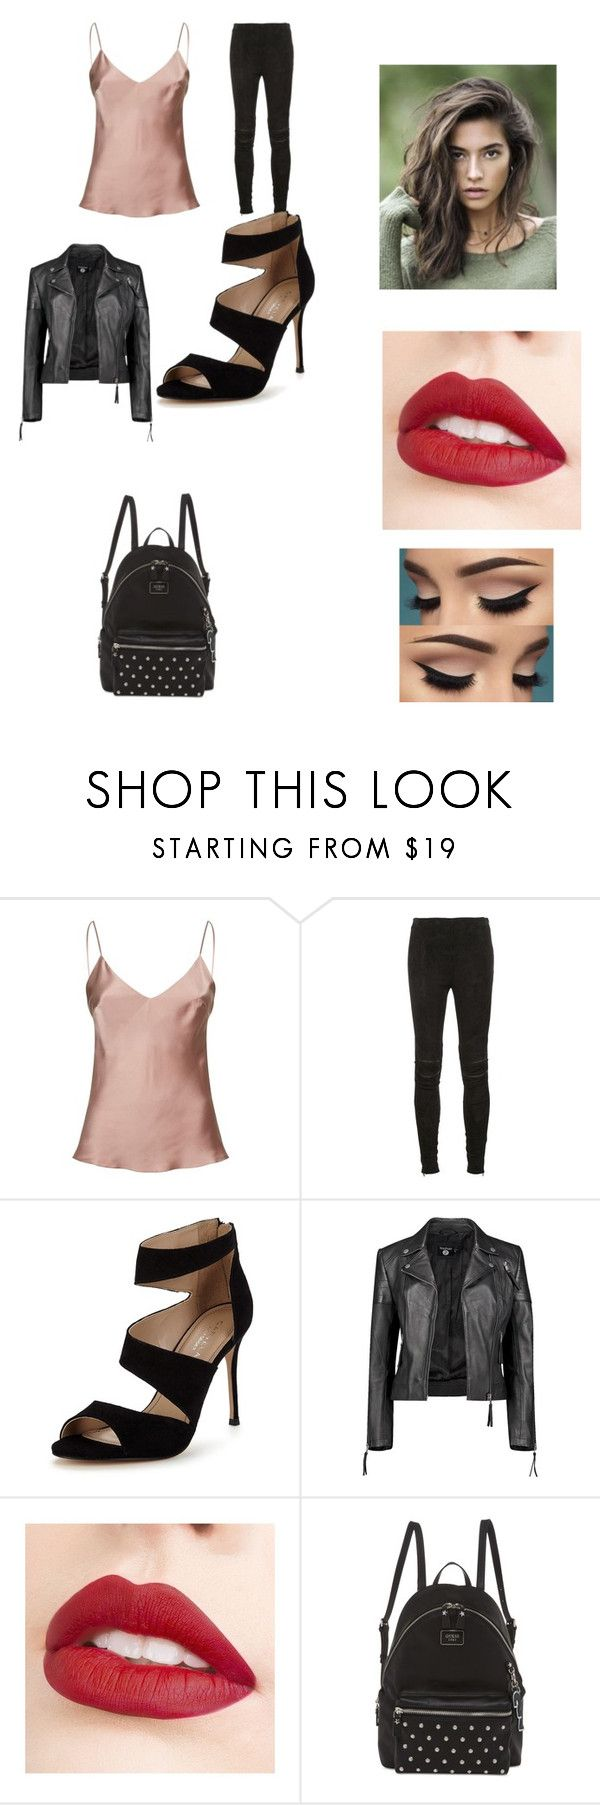 """Kalani's Look"" by fashionablequeen368 on Polyvore featuring Gilda & Pearl, Yves Saint Laurent, Carvela, Boohoo, Jouer and GUESS"